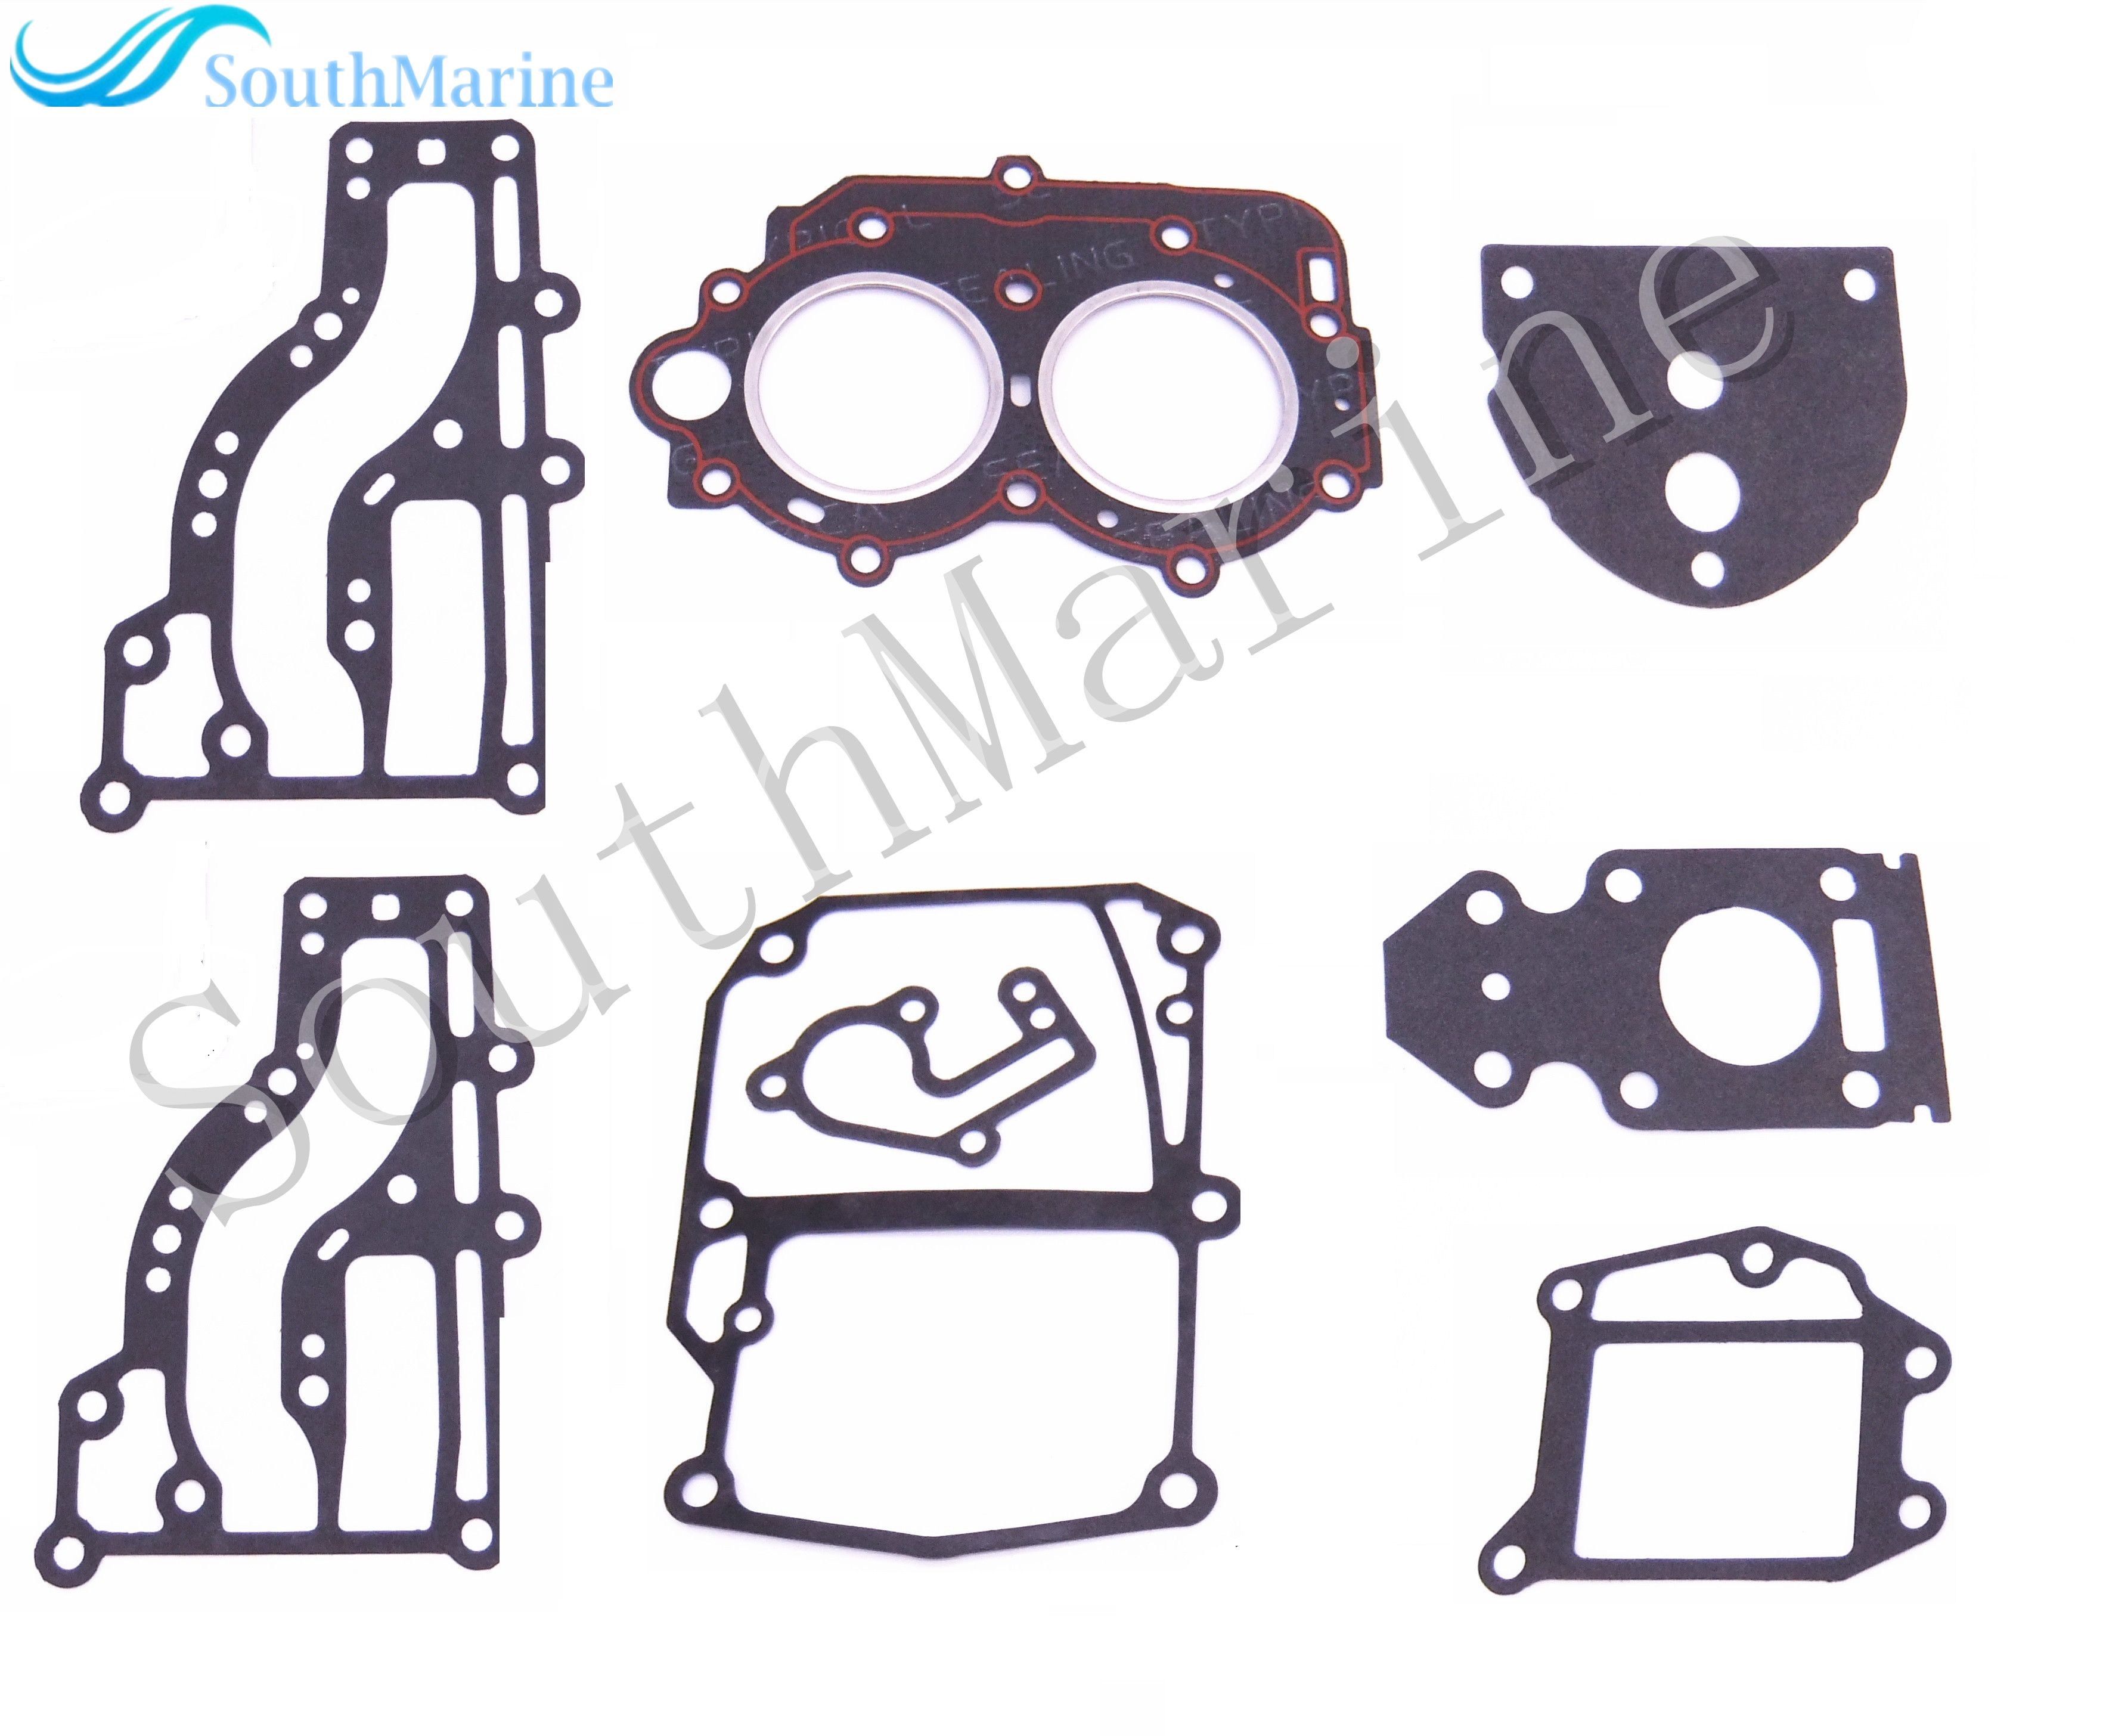 Complete Power Head Seal Gasket Kit Outboard Engine for Yamaha 9.9hp 15hp 63V Boat Motor Free Shipping 67h 43880 00 new tilt trim motor for yamaha 115 225 hp 1997 2002 outboard engine power motor 64e 43880